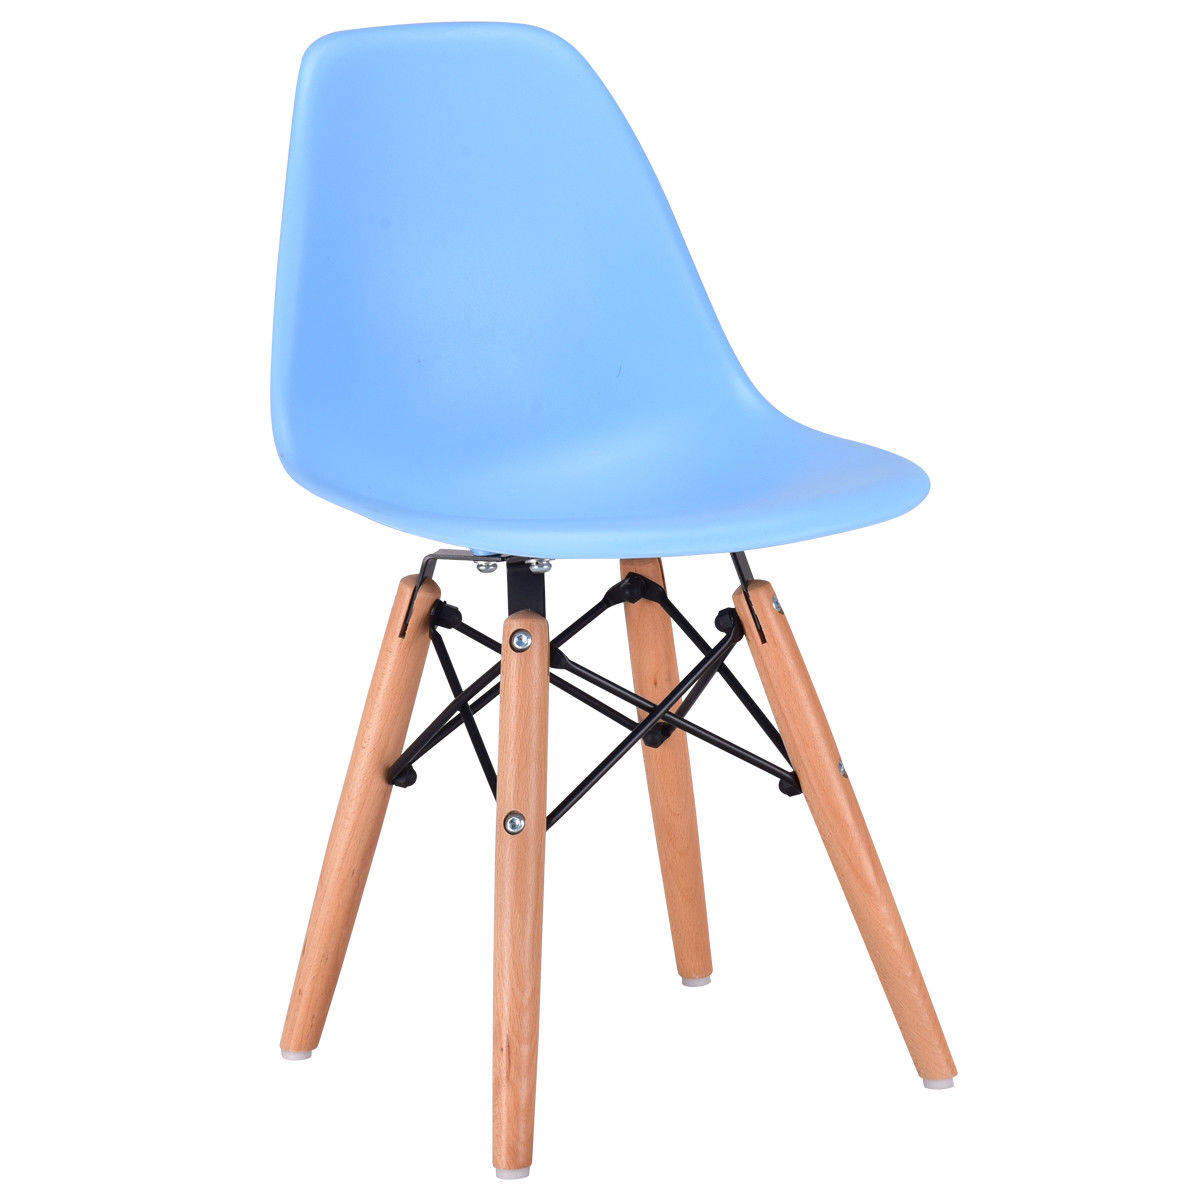 Swell Us 39 99 Giantex Modern Kids Dining Side Armless Chair Blue Molded Plastic Seat Wood Legs Children Chairs Home Furniture Hw56499Ny On Aliexpress Machost Co Dining Chair Design Ideas Machostcouk